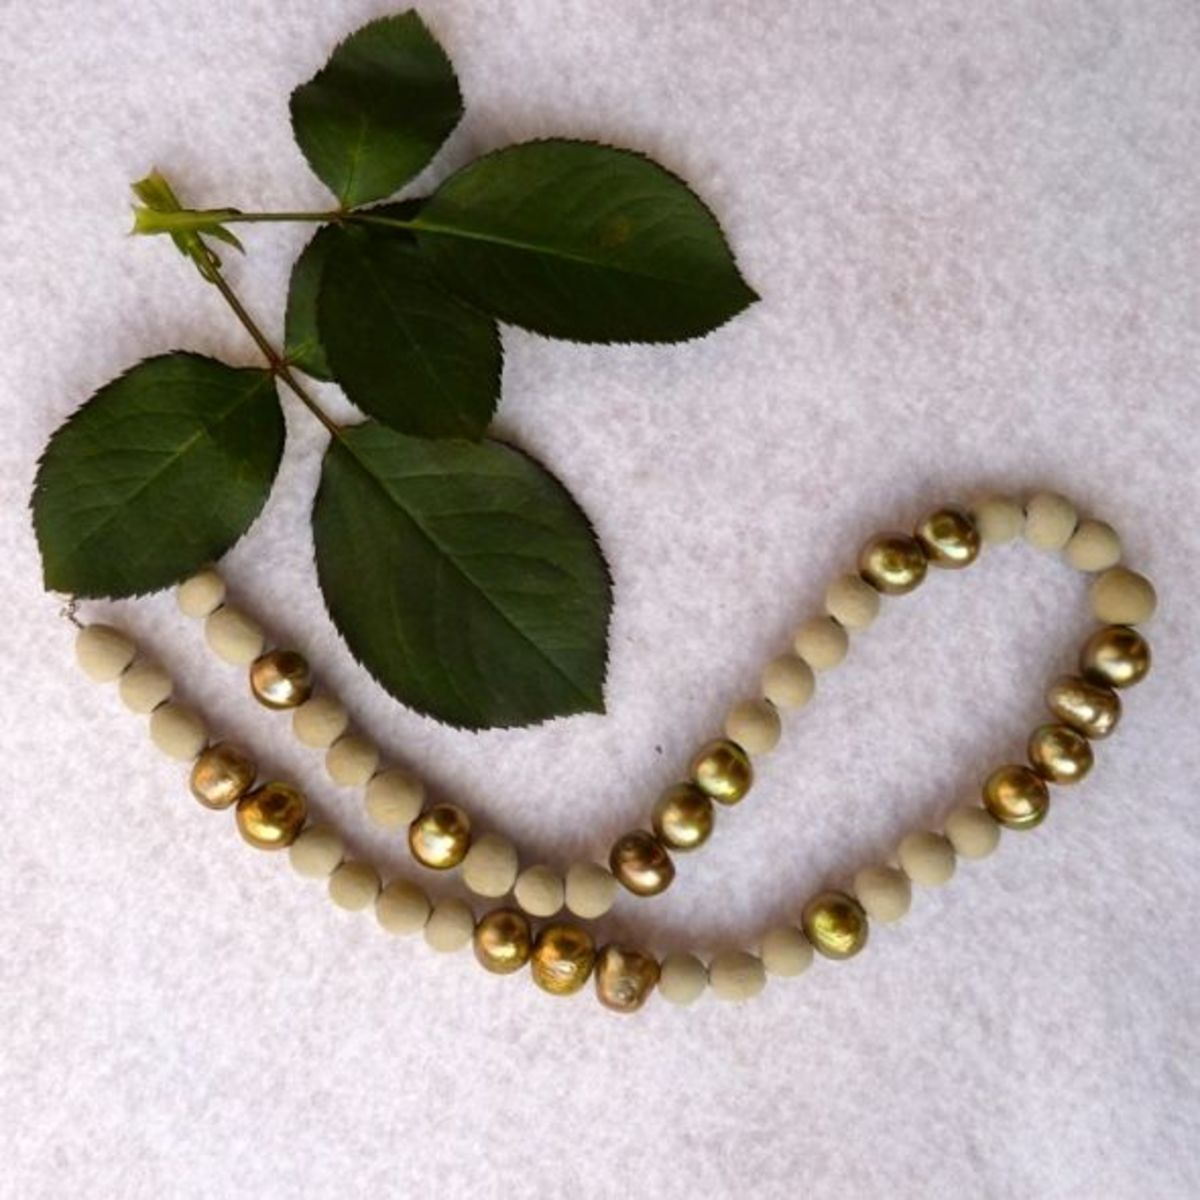 Green and white beads.